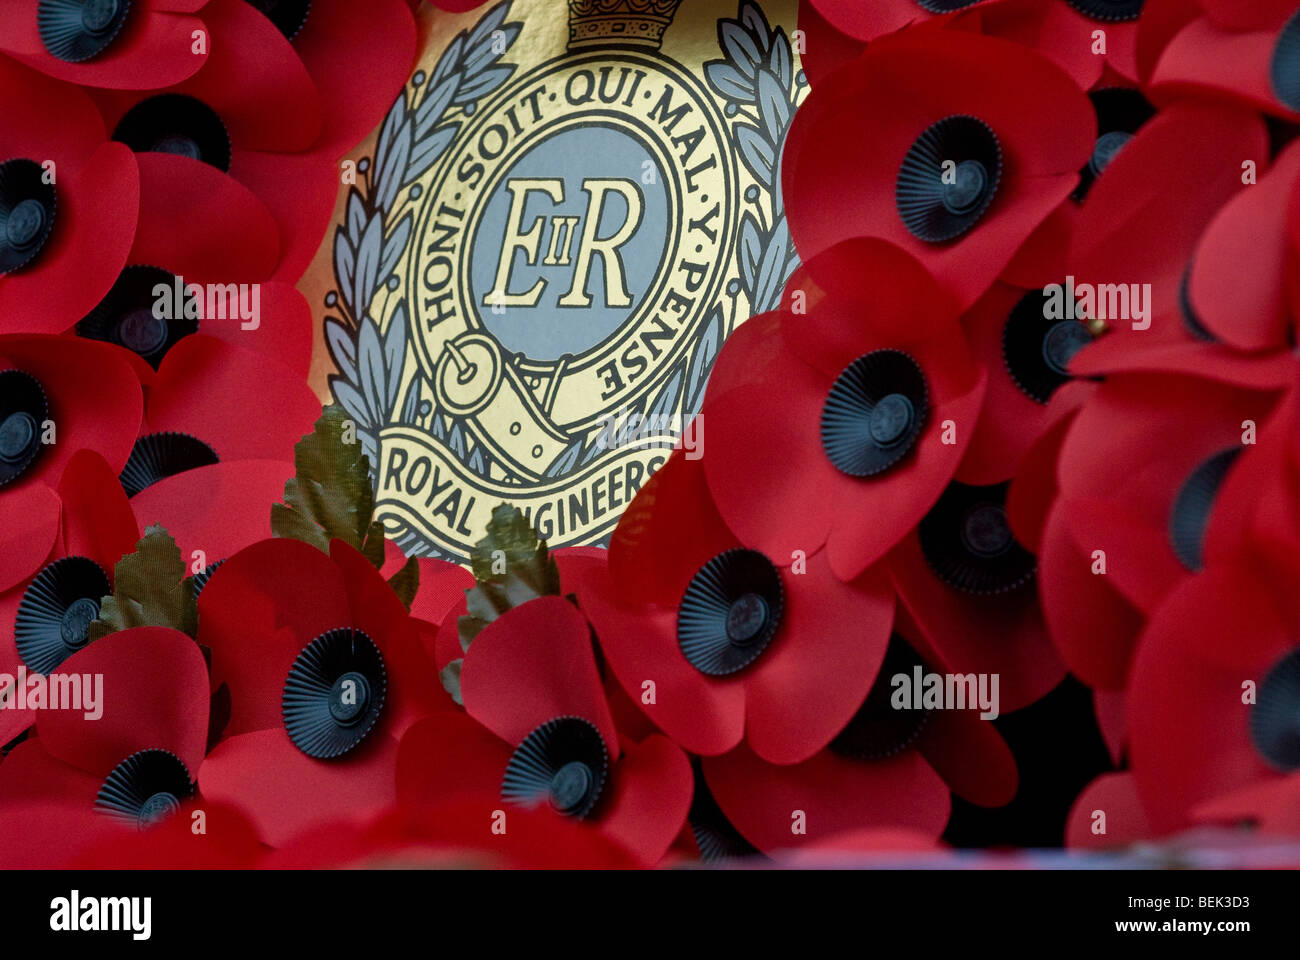 Wreaths, and crosses at Royal British Legion armistice day parade which is an annual event in the UK. - Stock Image